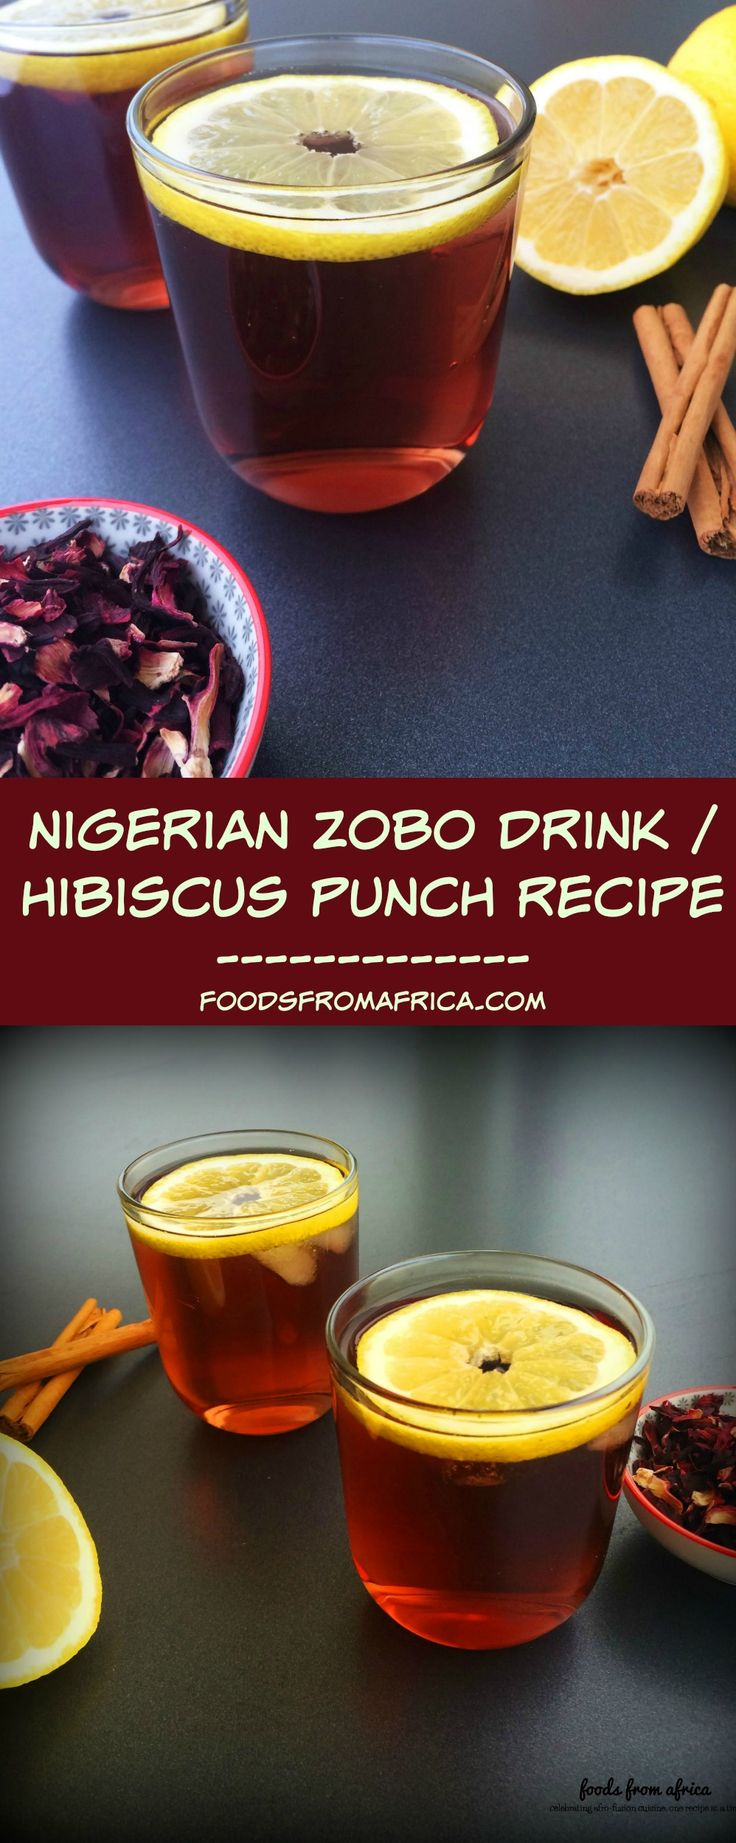 Forget over-boiled, over-sugared Zobo drinks. This 4-ingredient version of Zobo (Karkade/Sorrel/Hibiscus punch) is simple and refreshing.  Afro-fusion food blog | Nigerian drink recipe | African food blog.